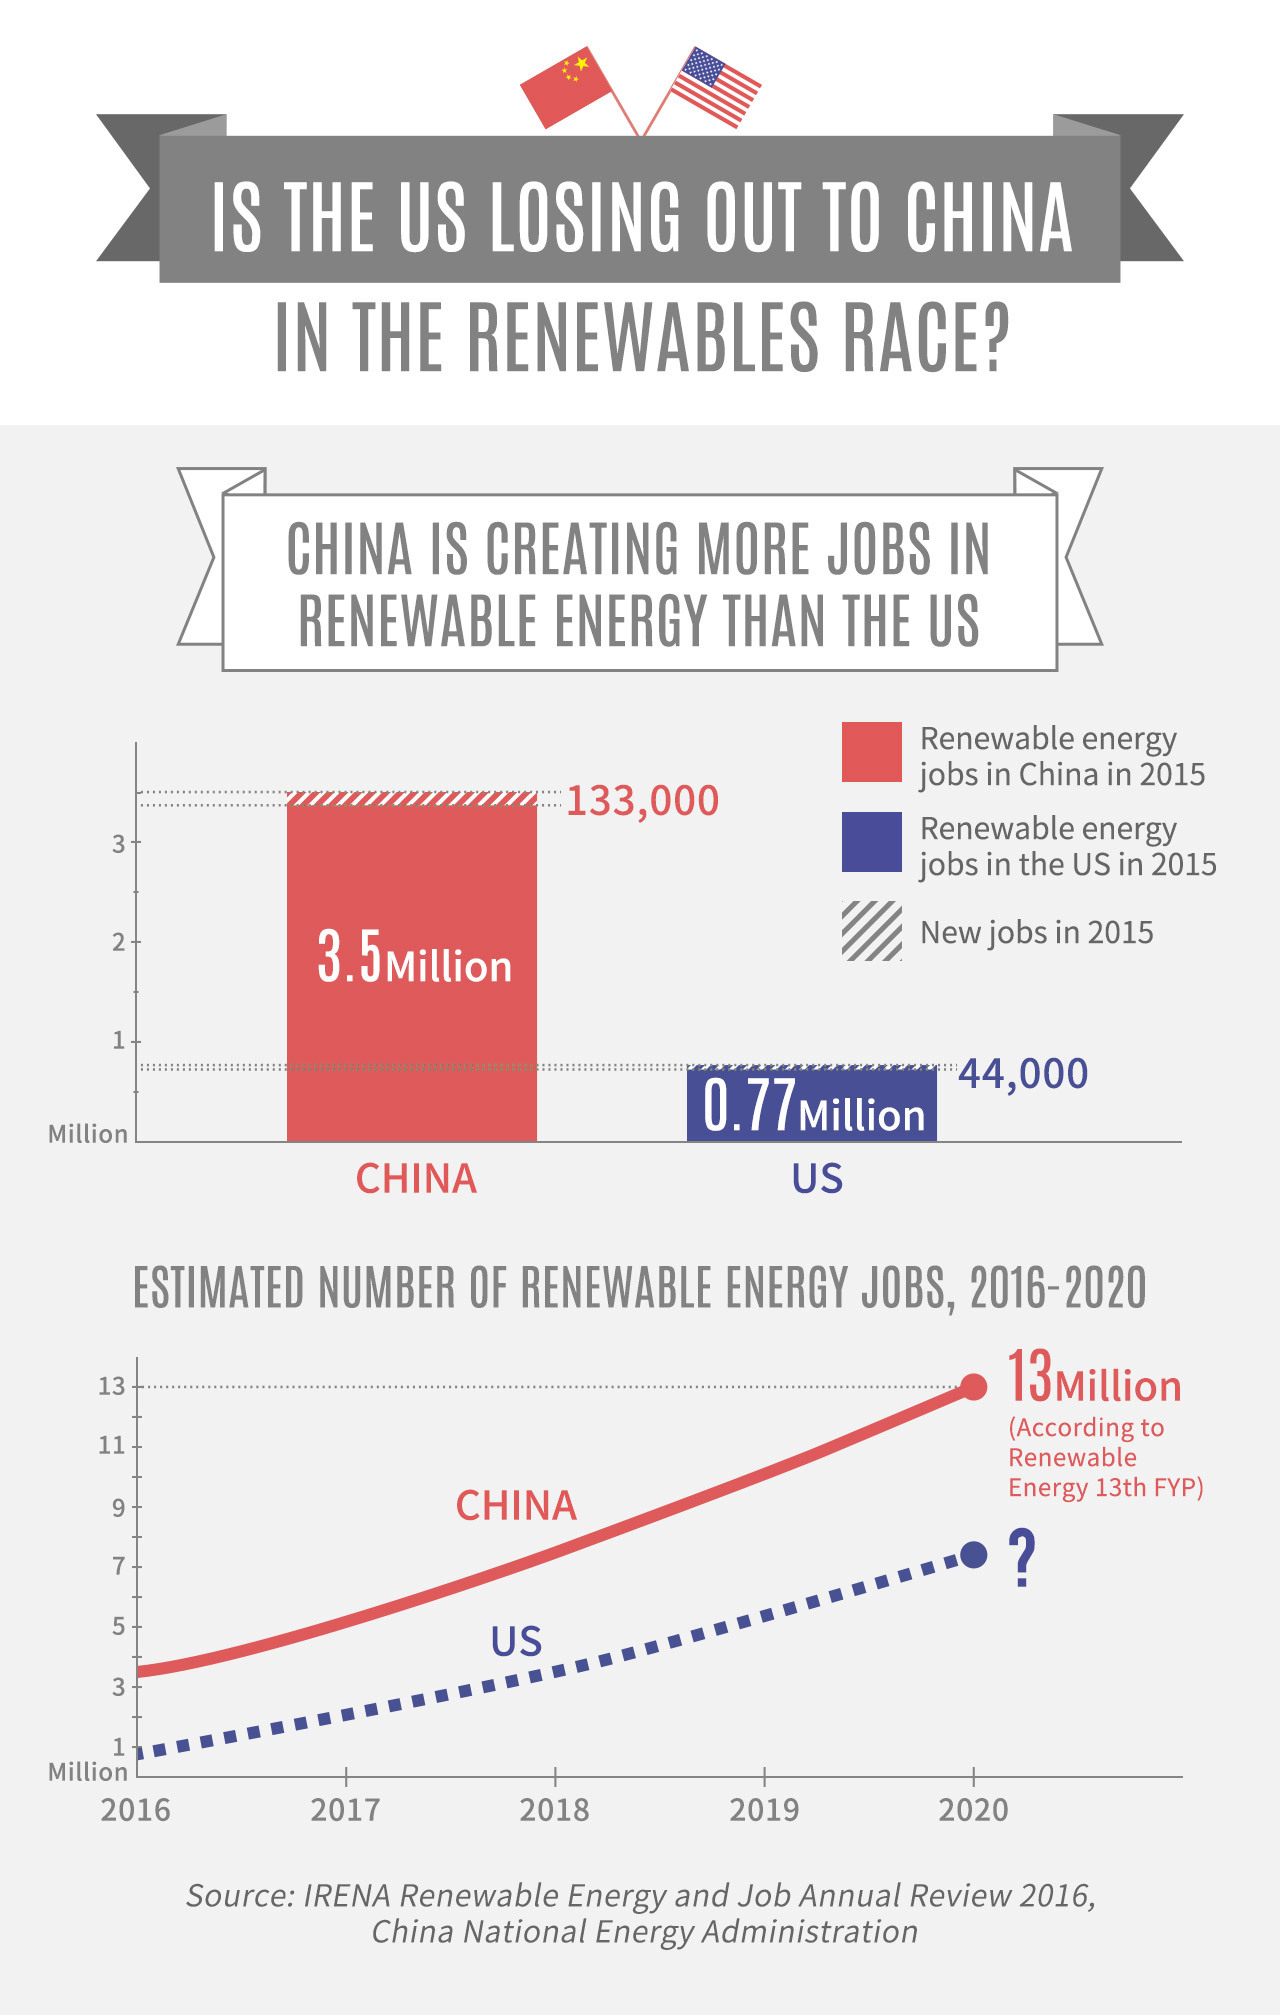 China is creating more jobs in renewable energy than the US